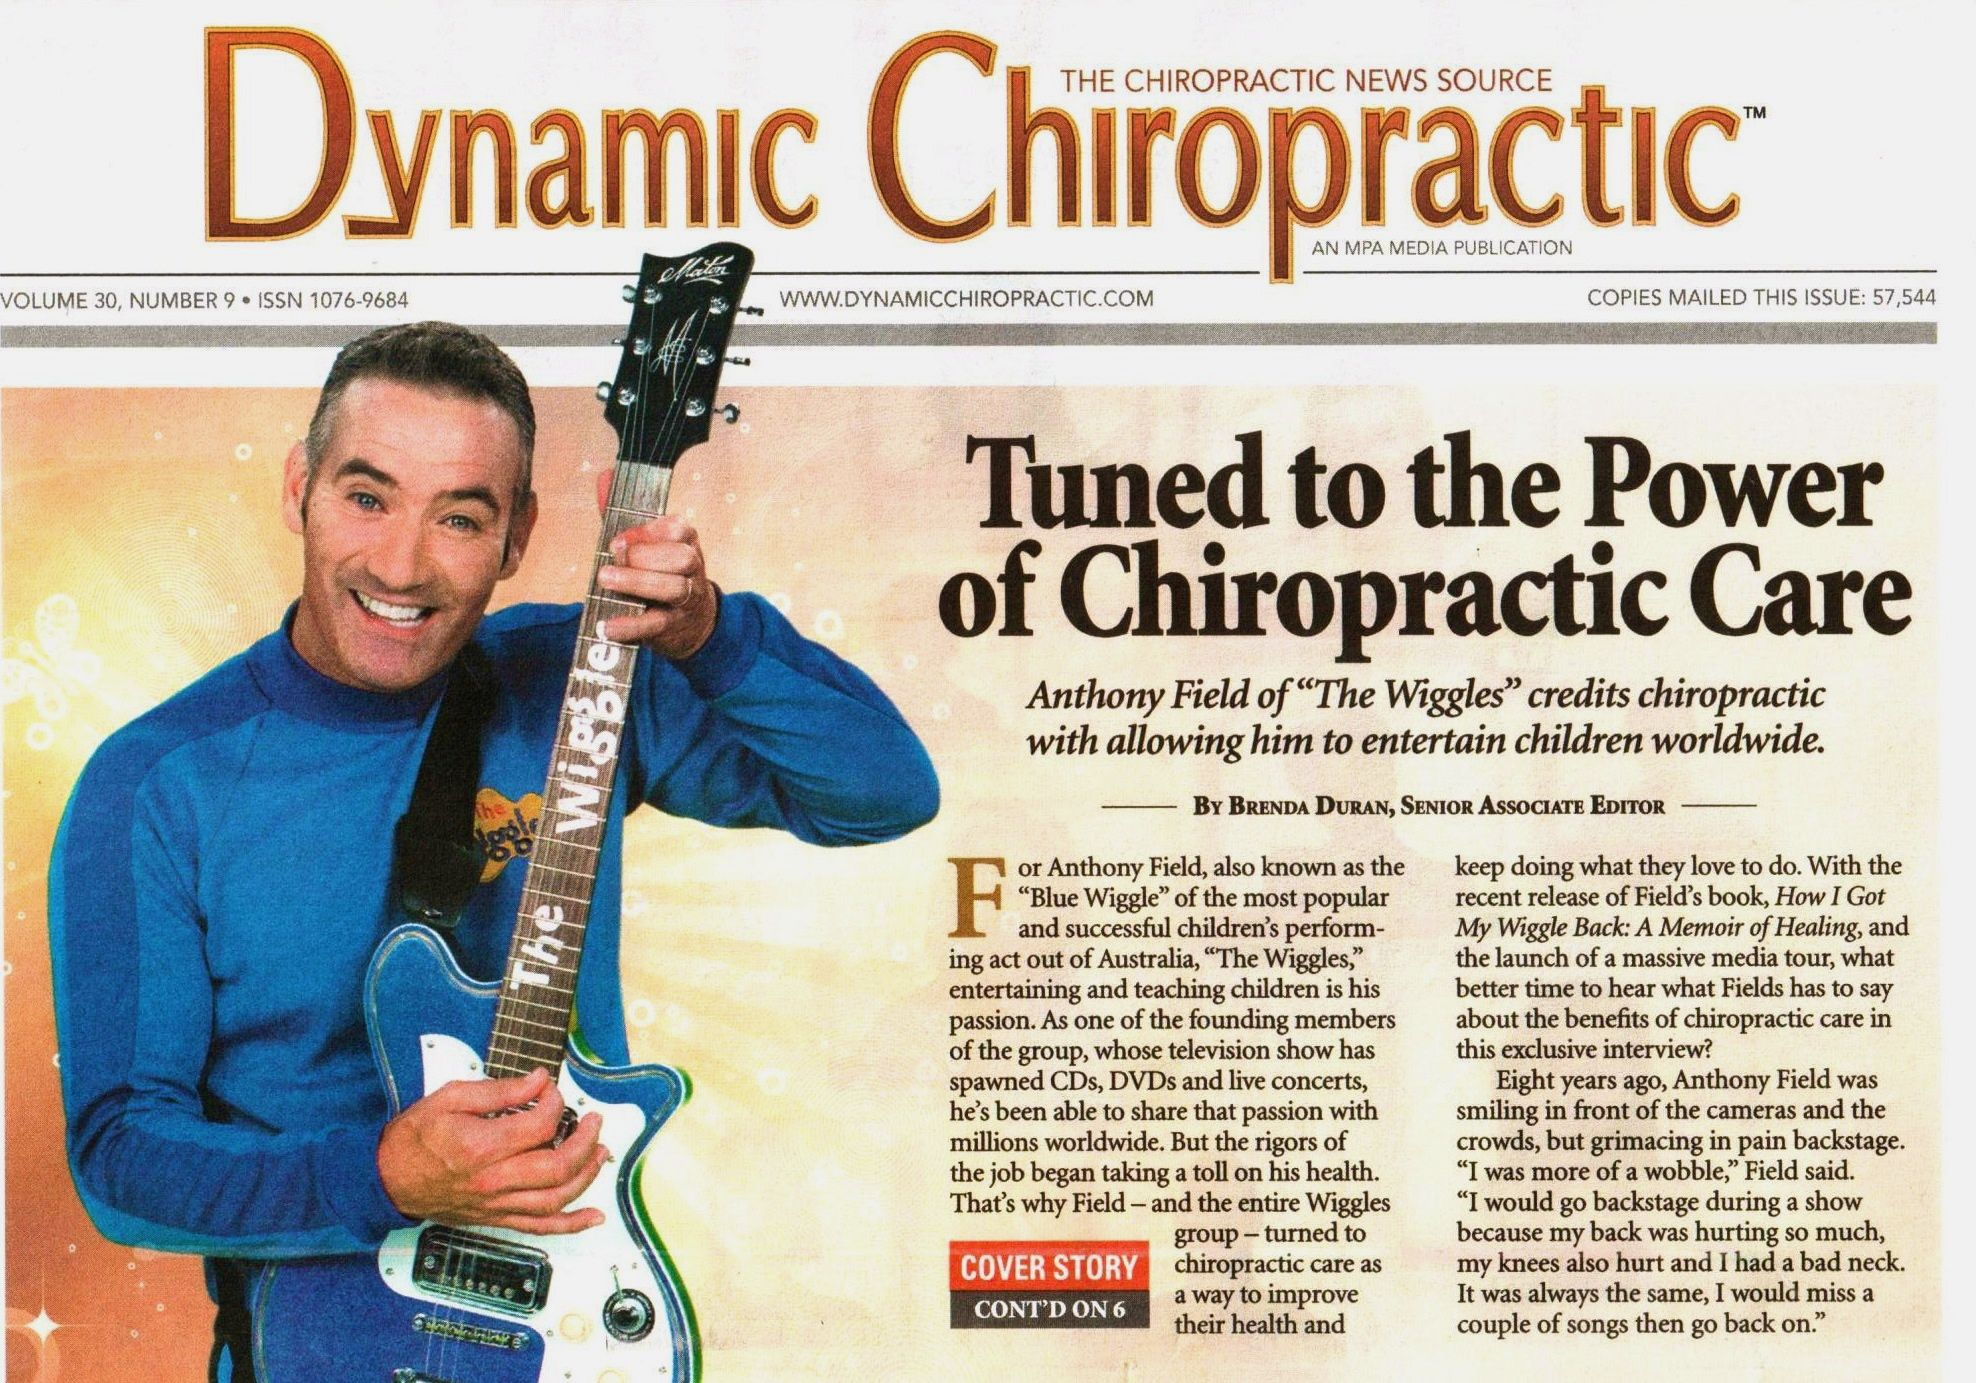 """Anthony Field of """"The Wiggles"""" credits chiropractic with getting his wiggle back."""